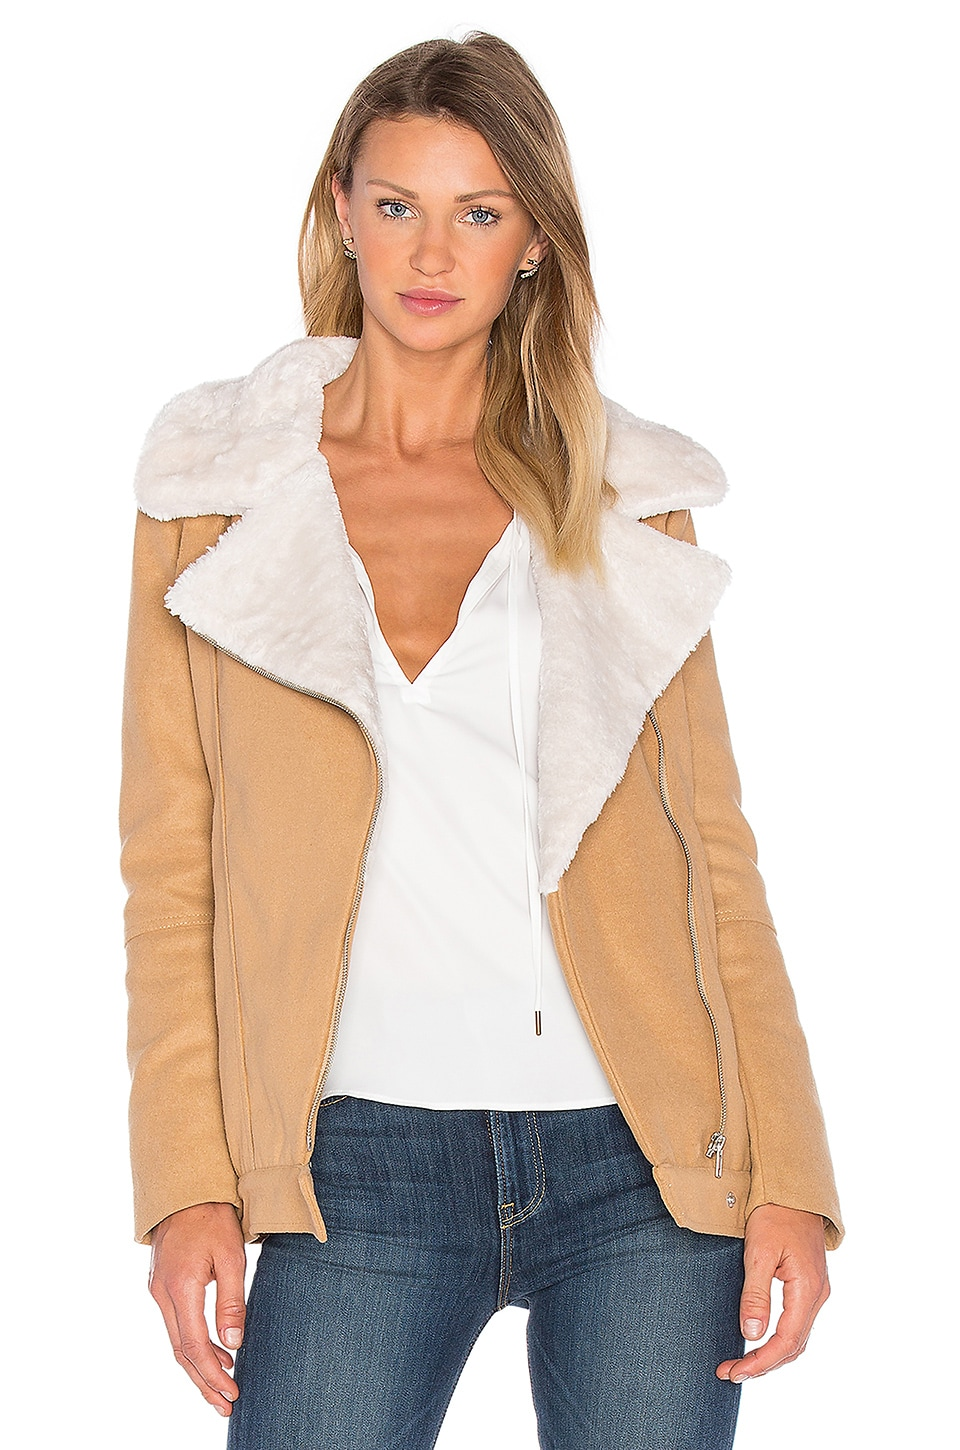 Above & Beyond Jacket with faux fur collar by The Fifth Label